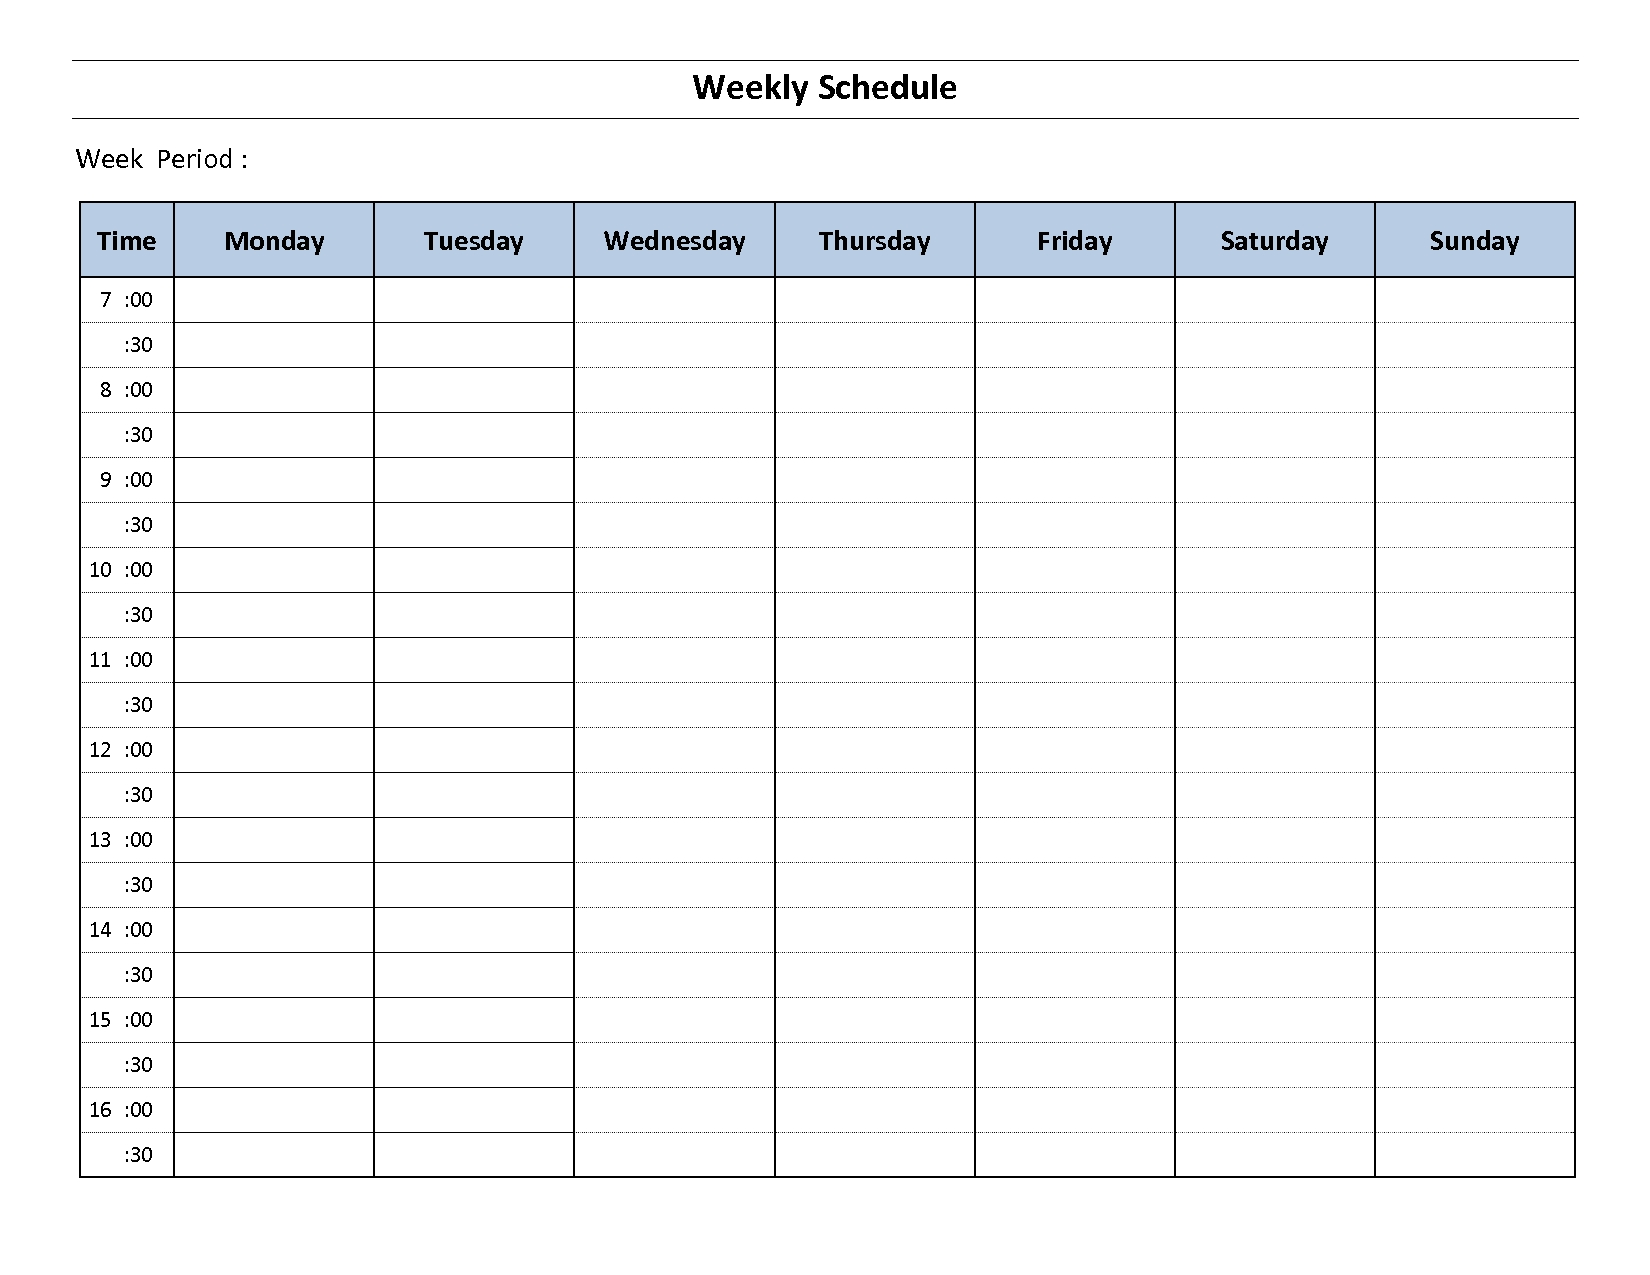 Construction Schedule Template Excel Free Download | Weekly Calendar Template Excel Free